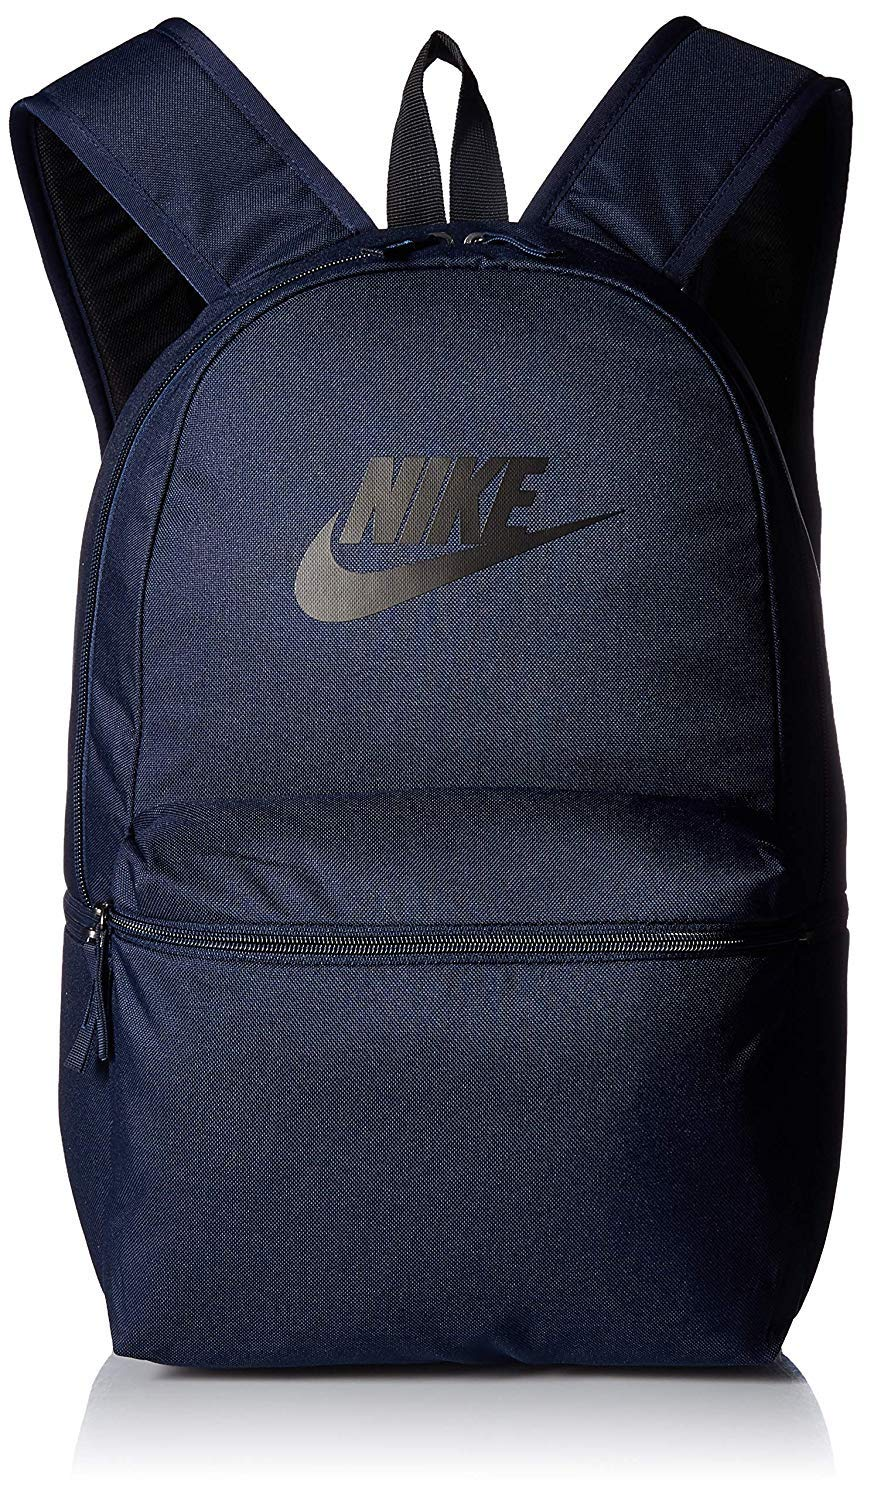 6c29a374b6c NIKE Heritage Backpack Book Bag Laptop Tablet Storage Rucksack Day Pack  Gear Tote (Navy Blue): Amazon.ca: Electronics